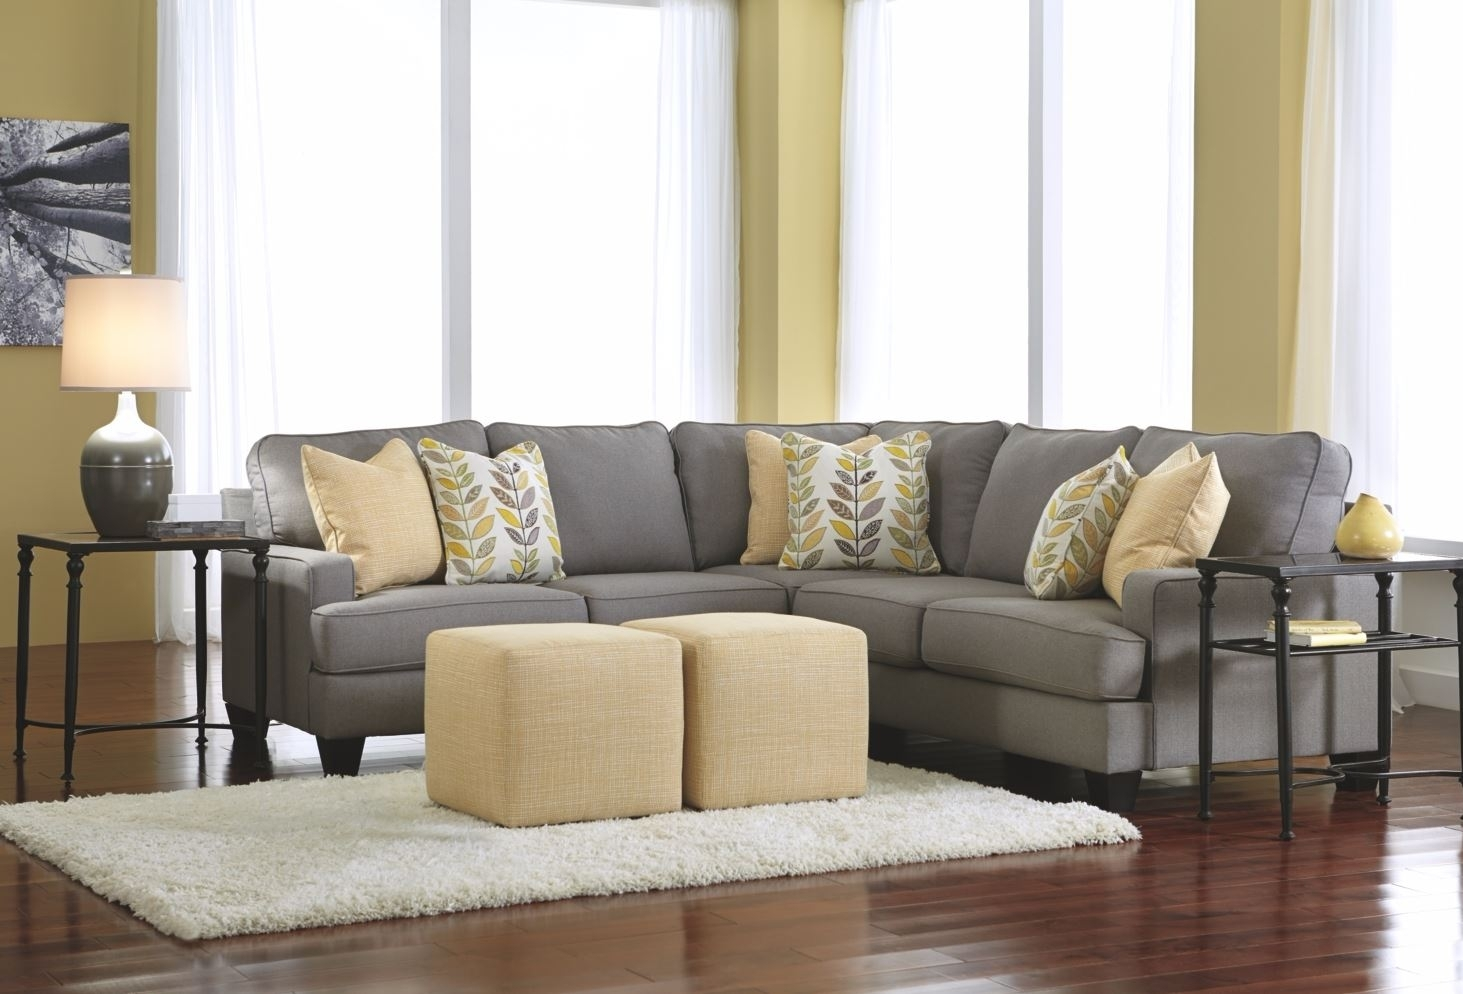 5 Tips For Getting The Sectional Of Your Dreams | Ashley Homestore Intended For Karen 3 Piece Sectionals (View 15 of 25)